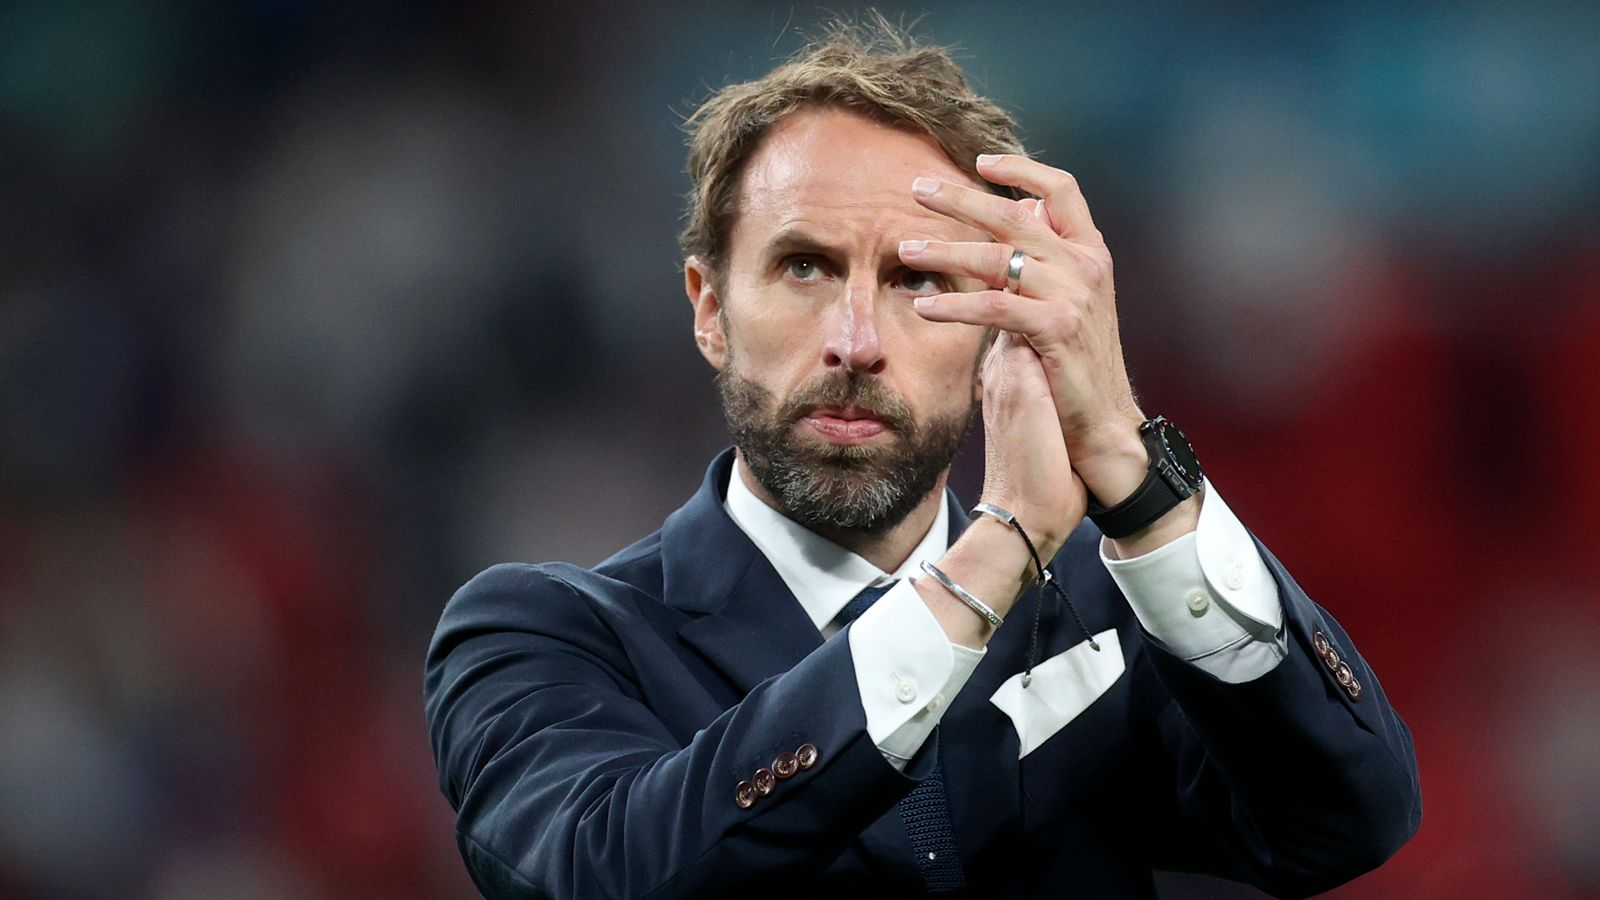 Gareth Southgate: 'I don't want to outstay my welcome' as England manager after Euro 2020 heartbreak